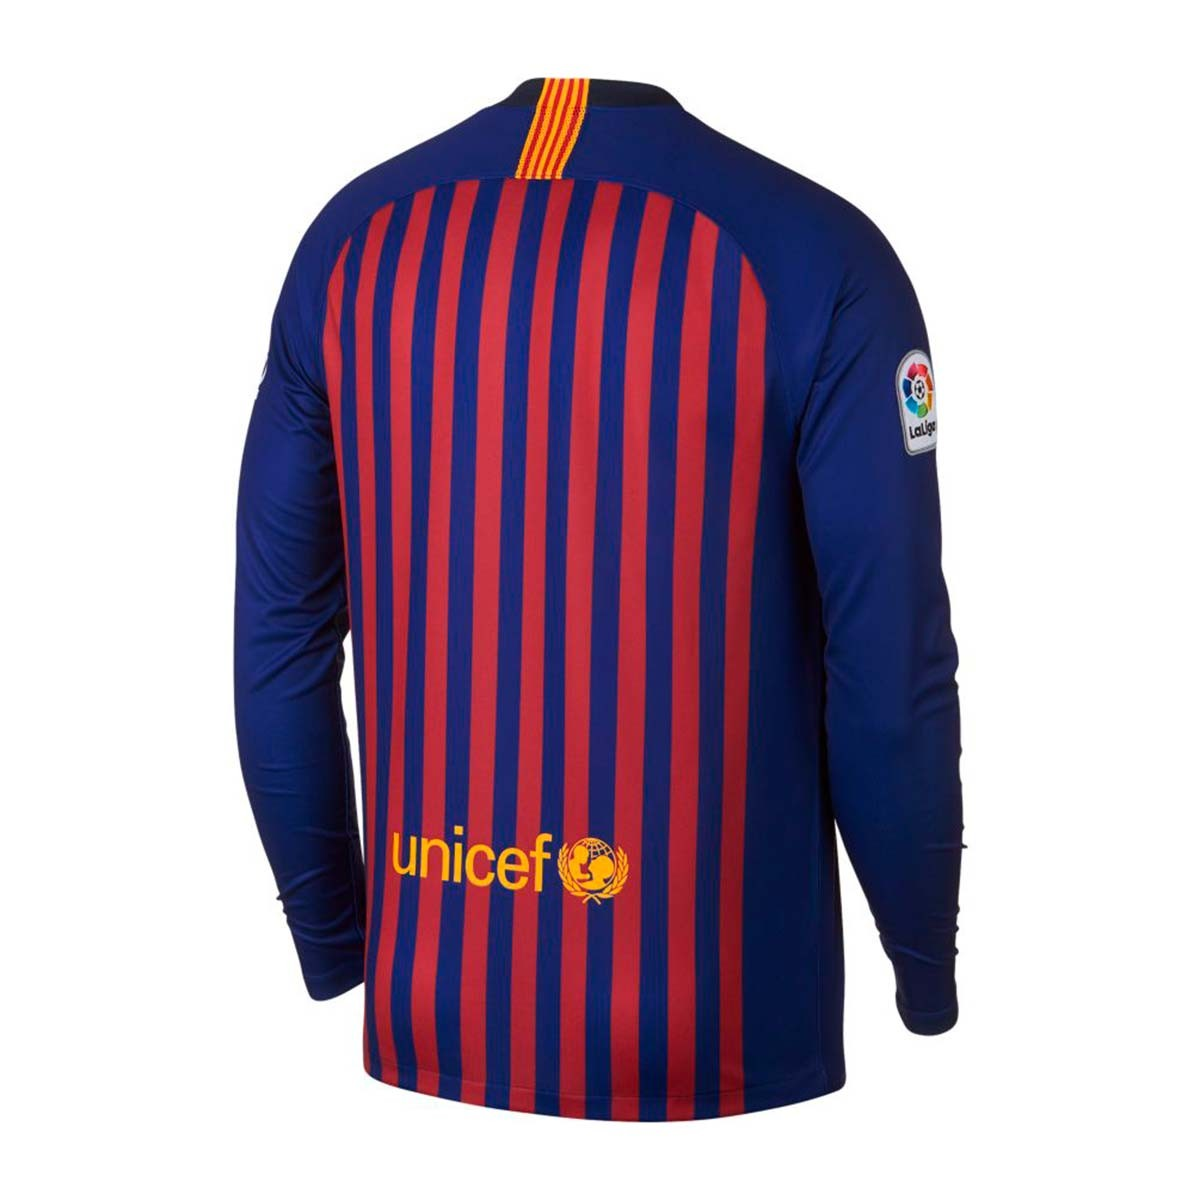 45532bface9 Jersey Nike FC Barcelona Stadium L/S 2018-2019 Home Deep royal blue ...